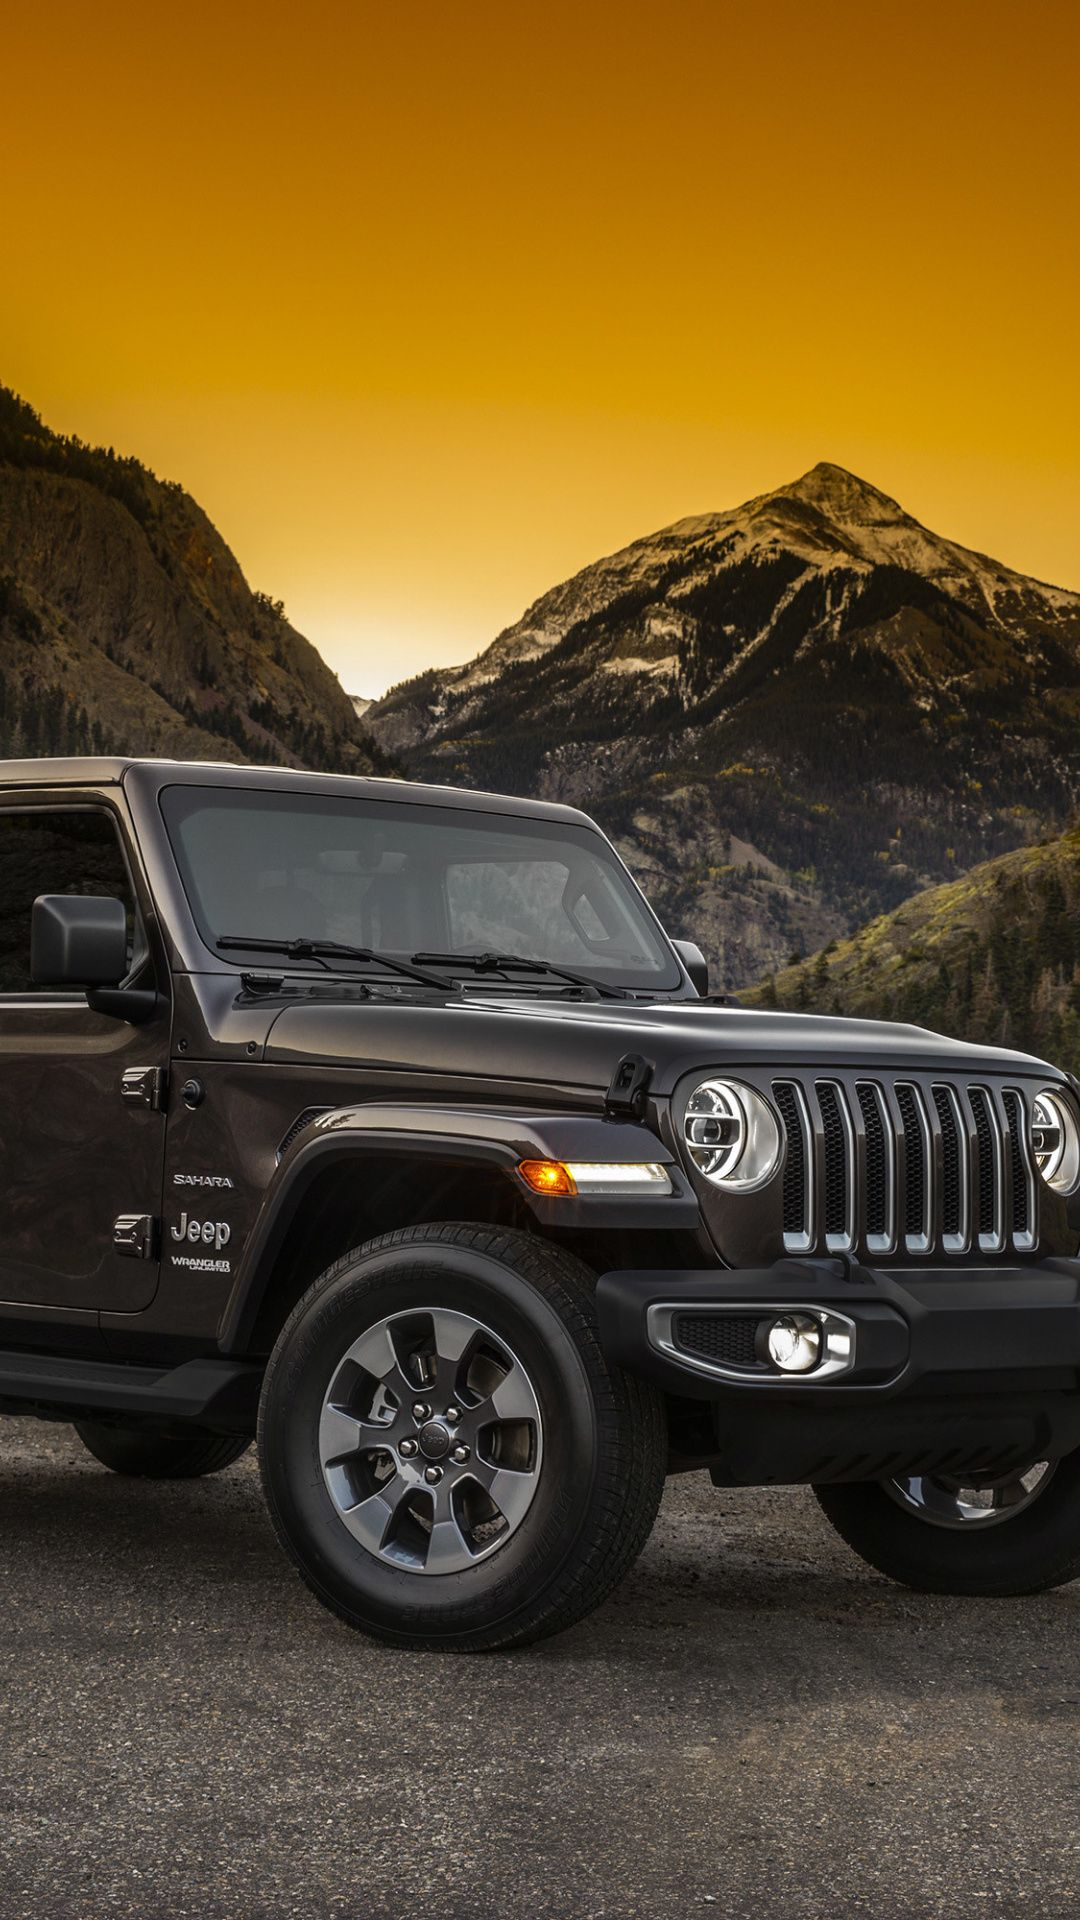 Jeep Wrangler Sprots Utility Vehicle Black 1080x1920 Wallpaper